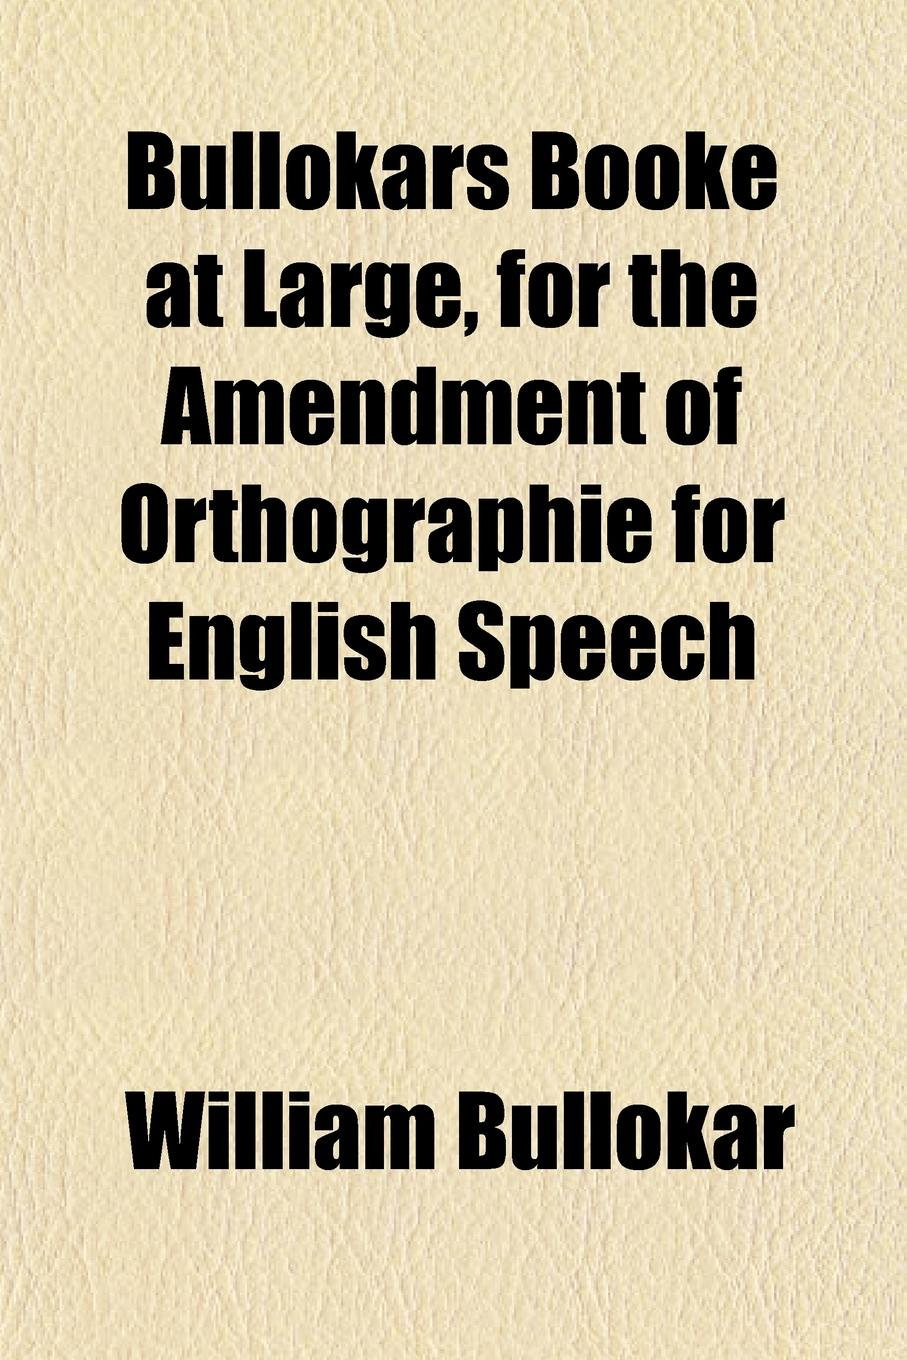 William Bullokar Bullokars Booke at Large, for the Amendment of Orthographie for English Speech william bullokar bullokars booke at large for the amendment of orthographie for english speech